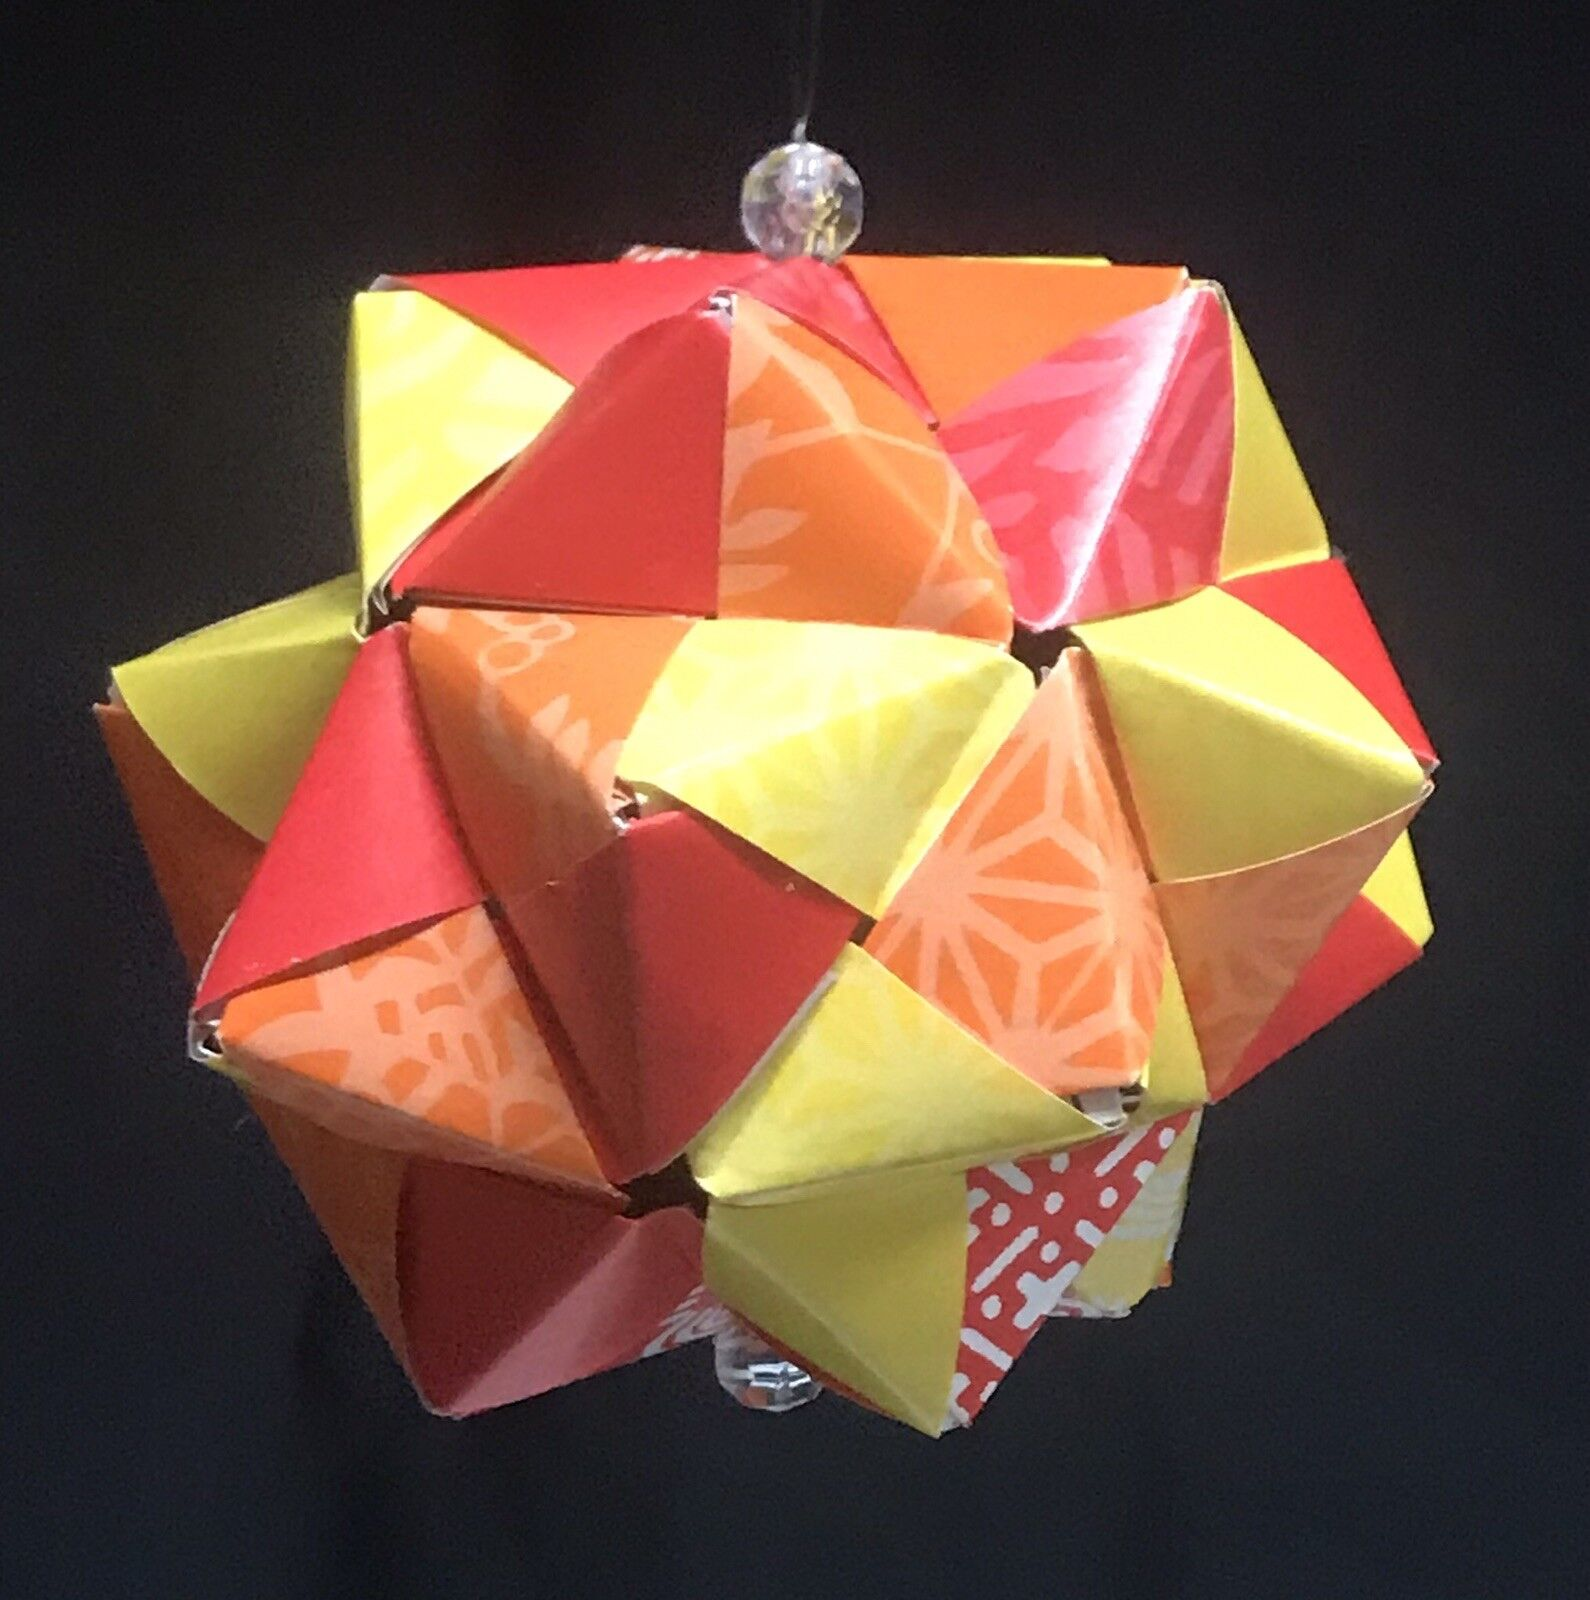 He Folds Paper Squares To Make An Impressive Origami Icosahedron | 1600x1590